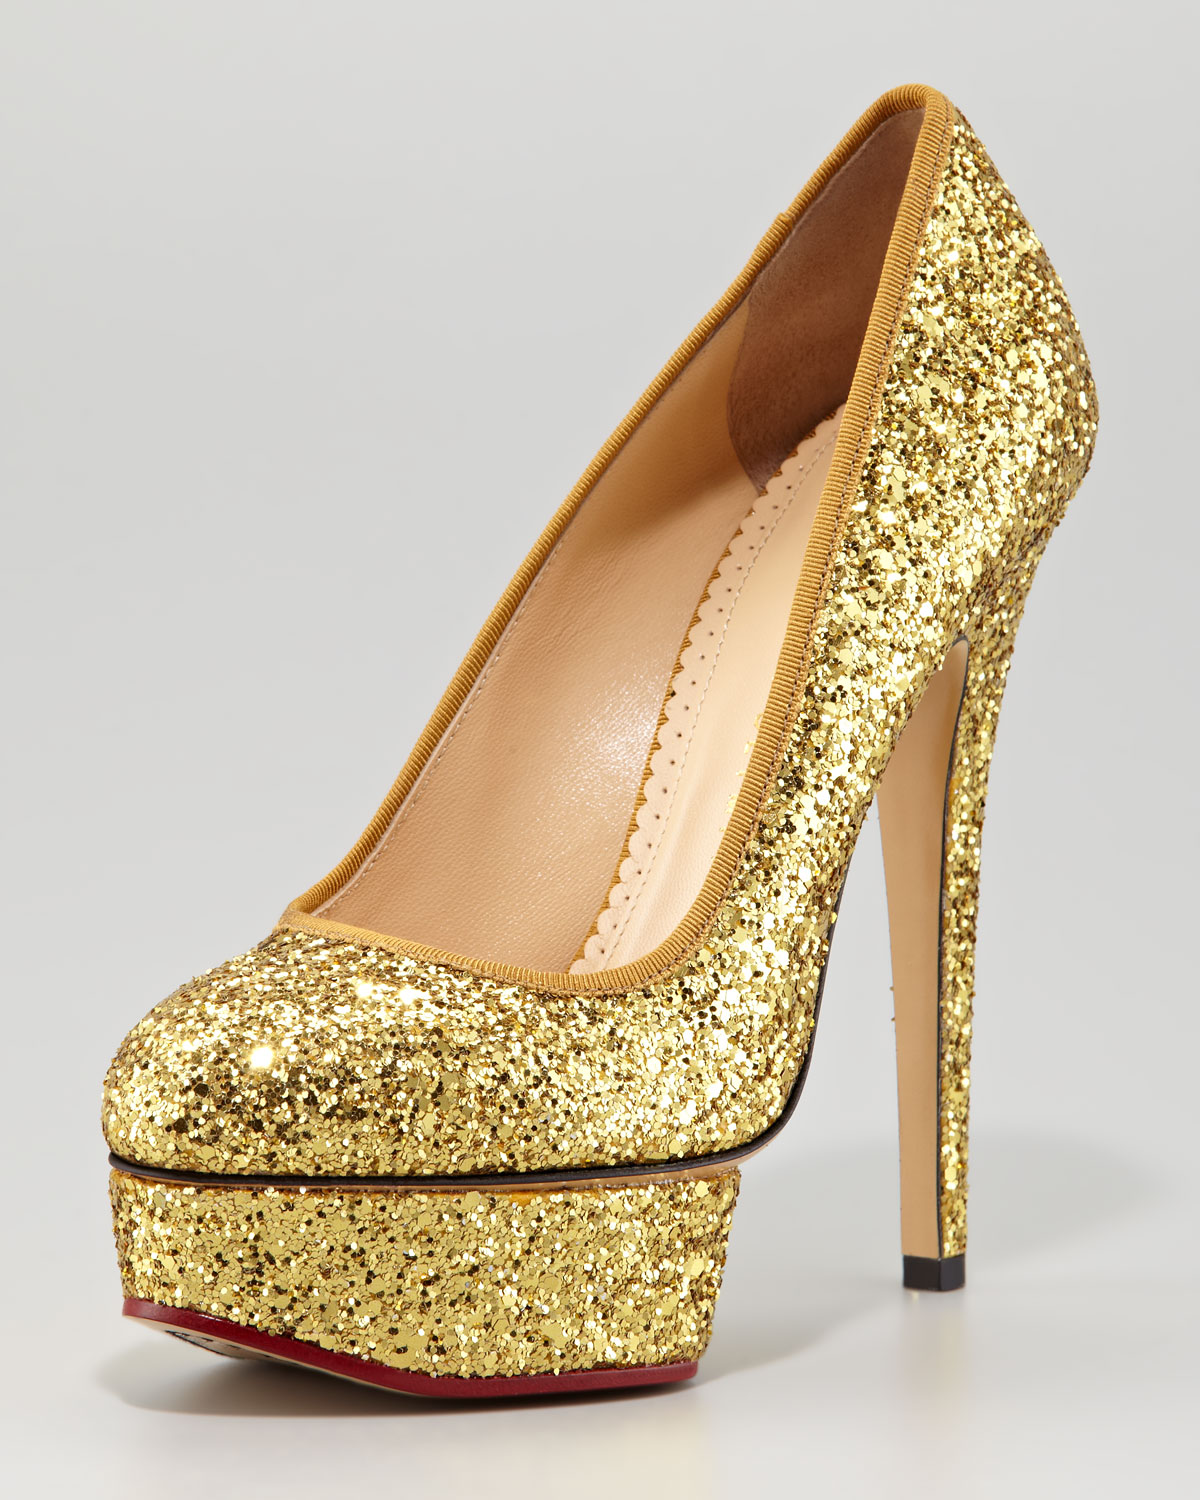 Charlotte Olympia Metallic Glitter Pumps outlet wide range of sale online shopping collections sale online outlet visit excellent cheap price b0IkVOQg